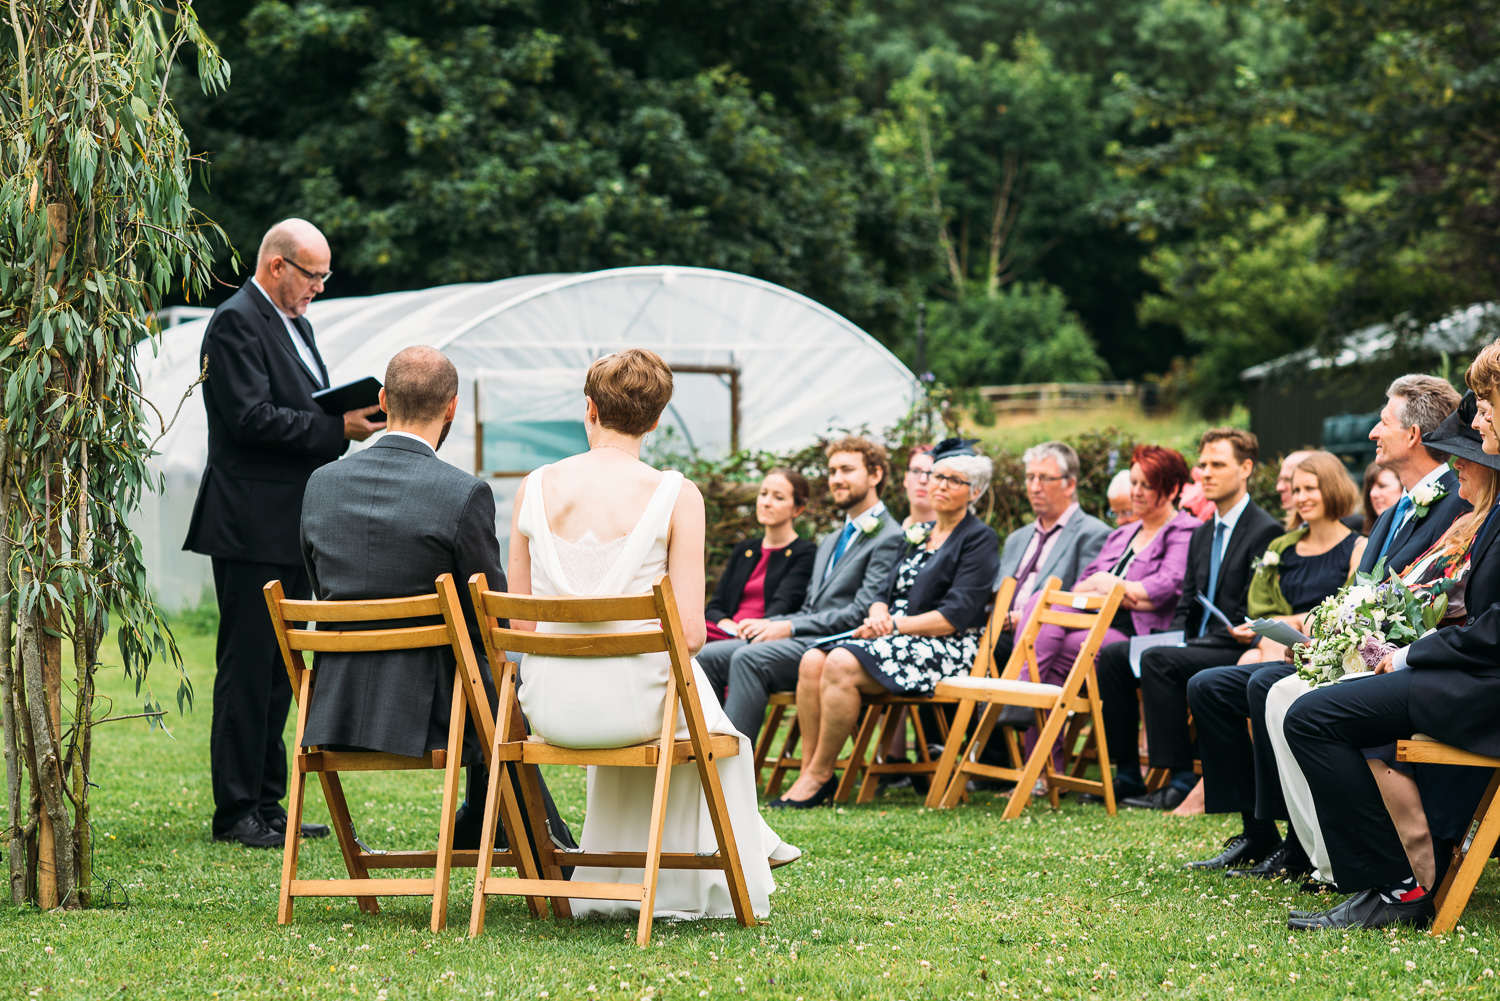 back-garden-wedding-32.jpg